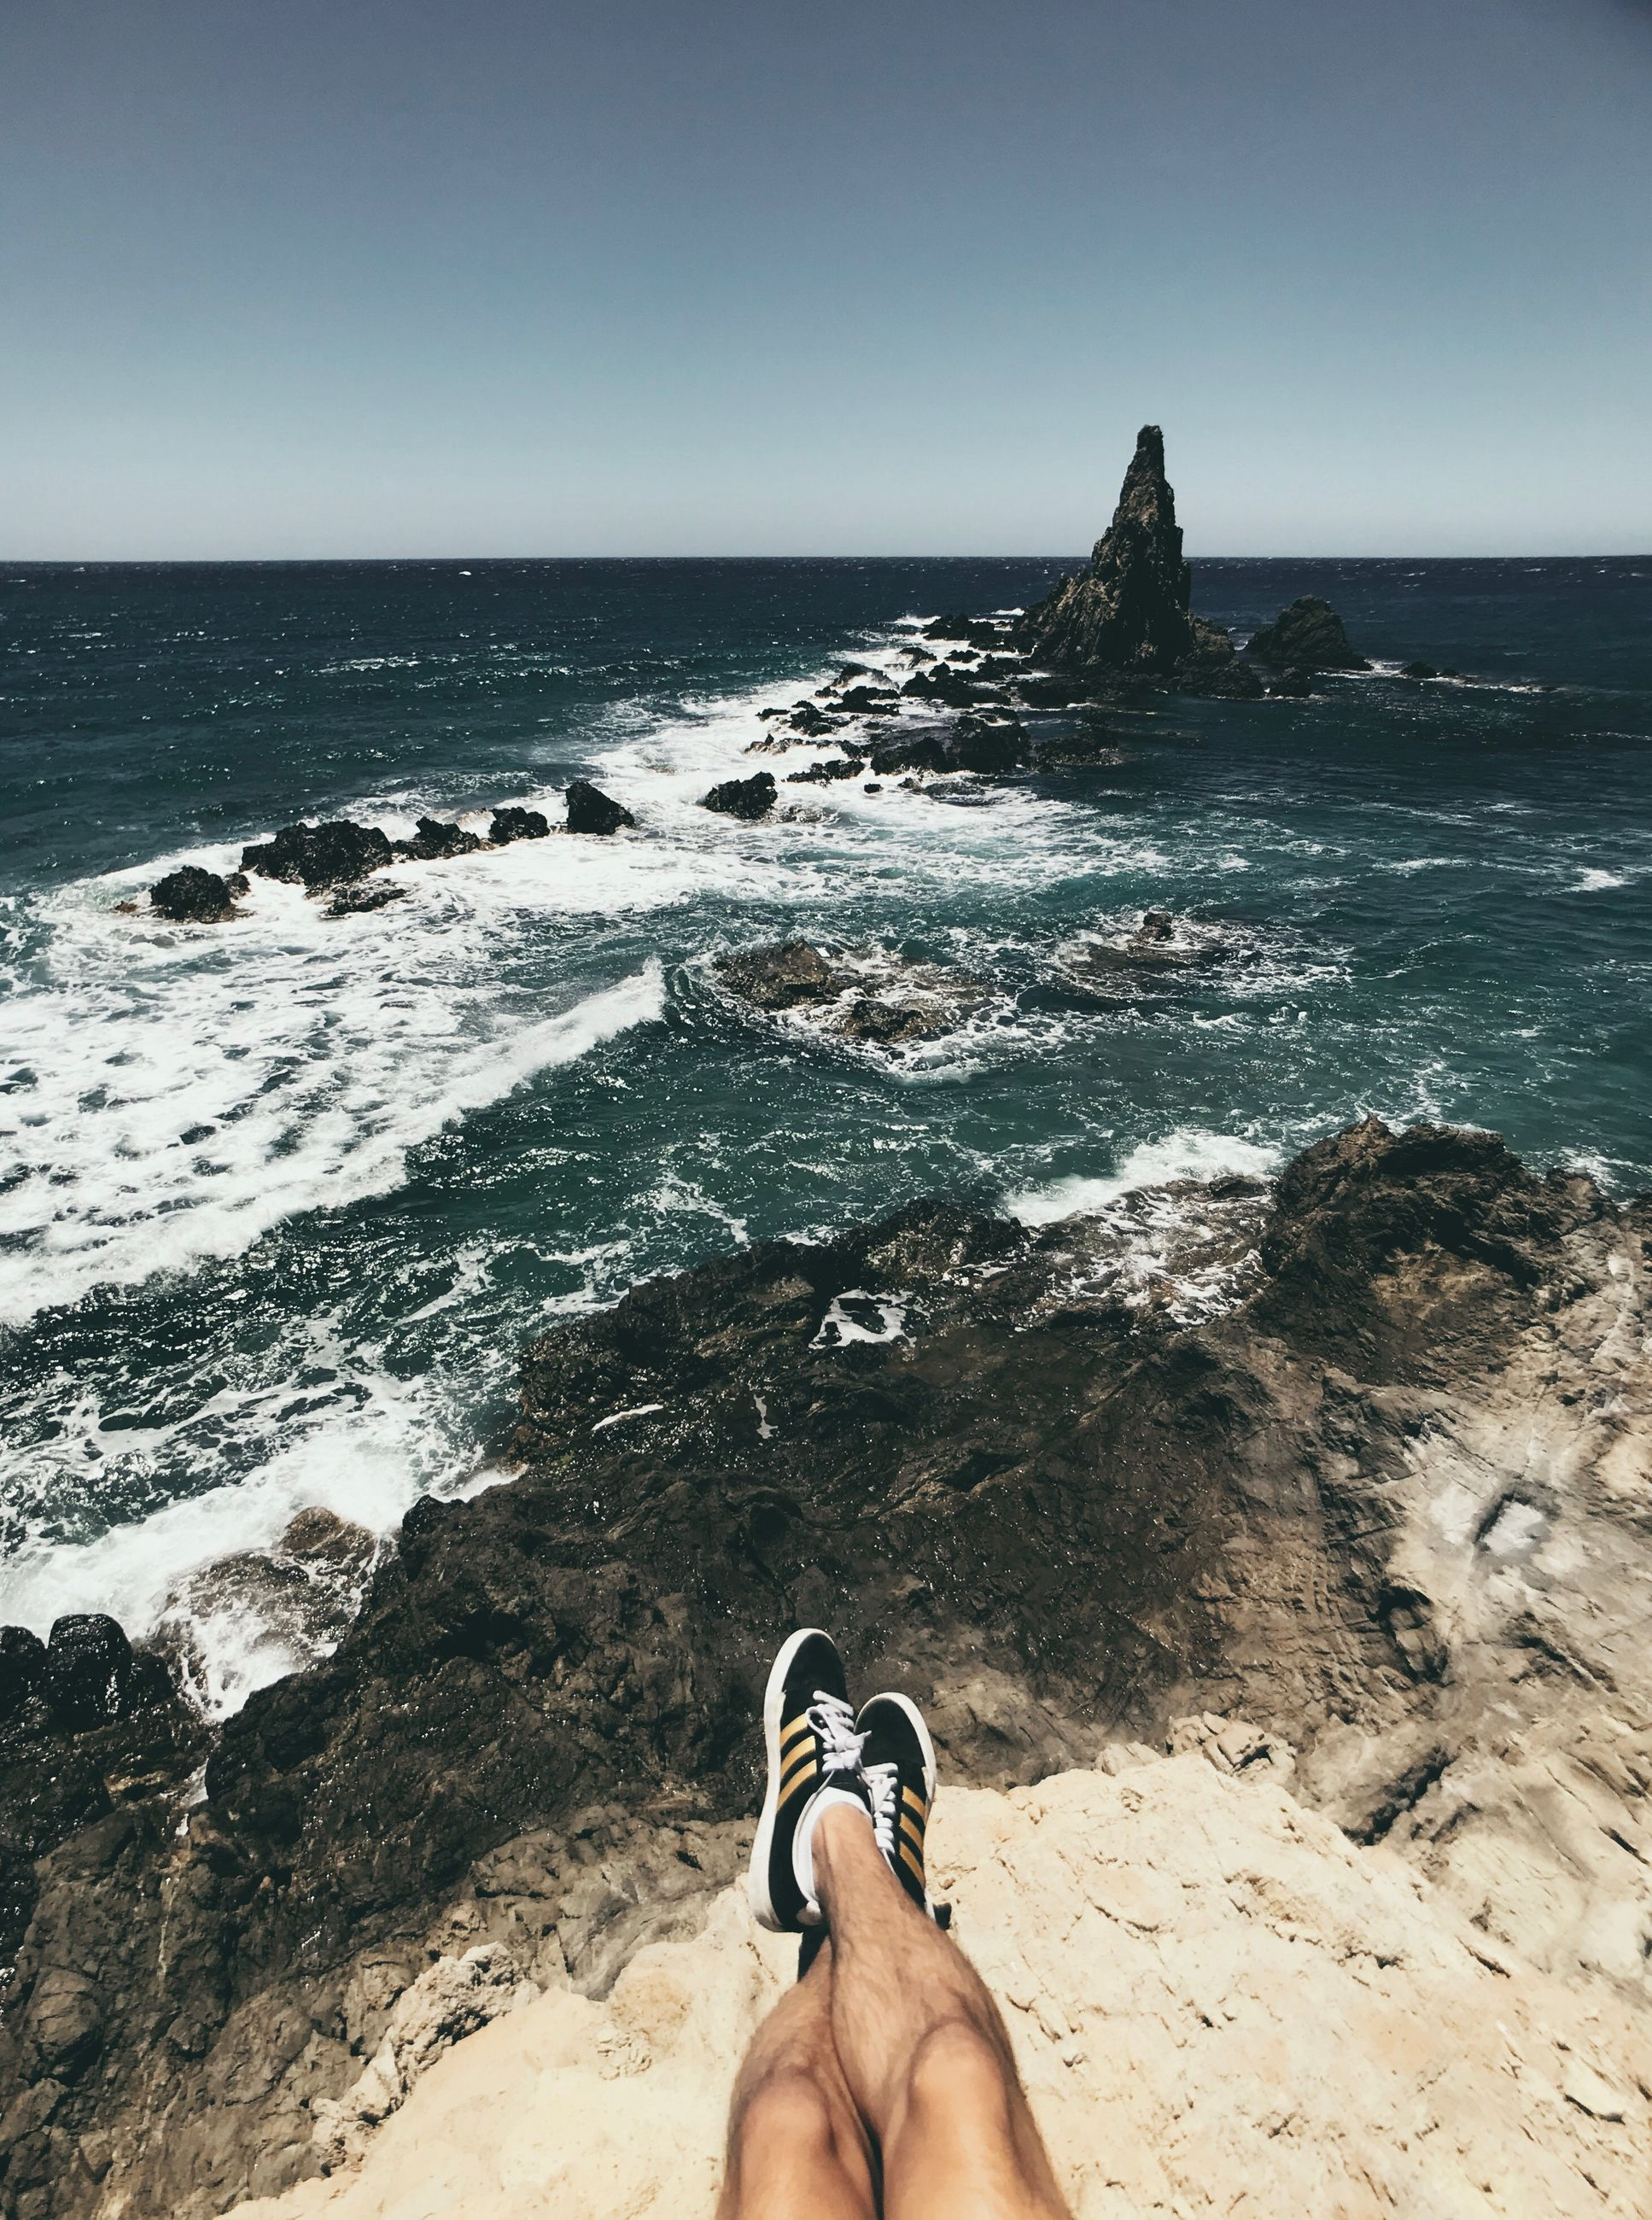 sea, water, beach, land, horizon, sky, personal perspective, horizon over water, low section, human body part, scenics - nature, nature, human leg, one person, beauty in nature, body part, clear sky, rock, day, outdoors, human foot